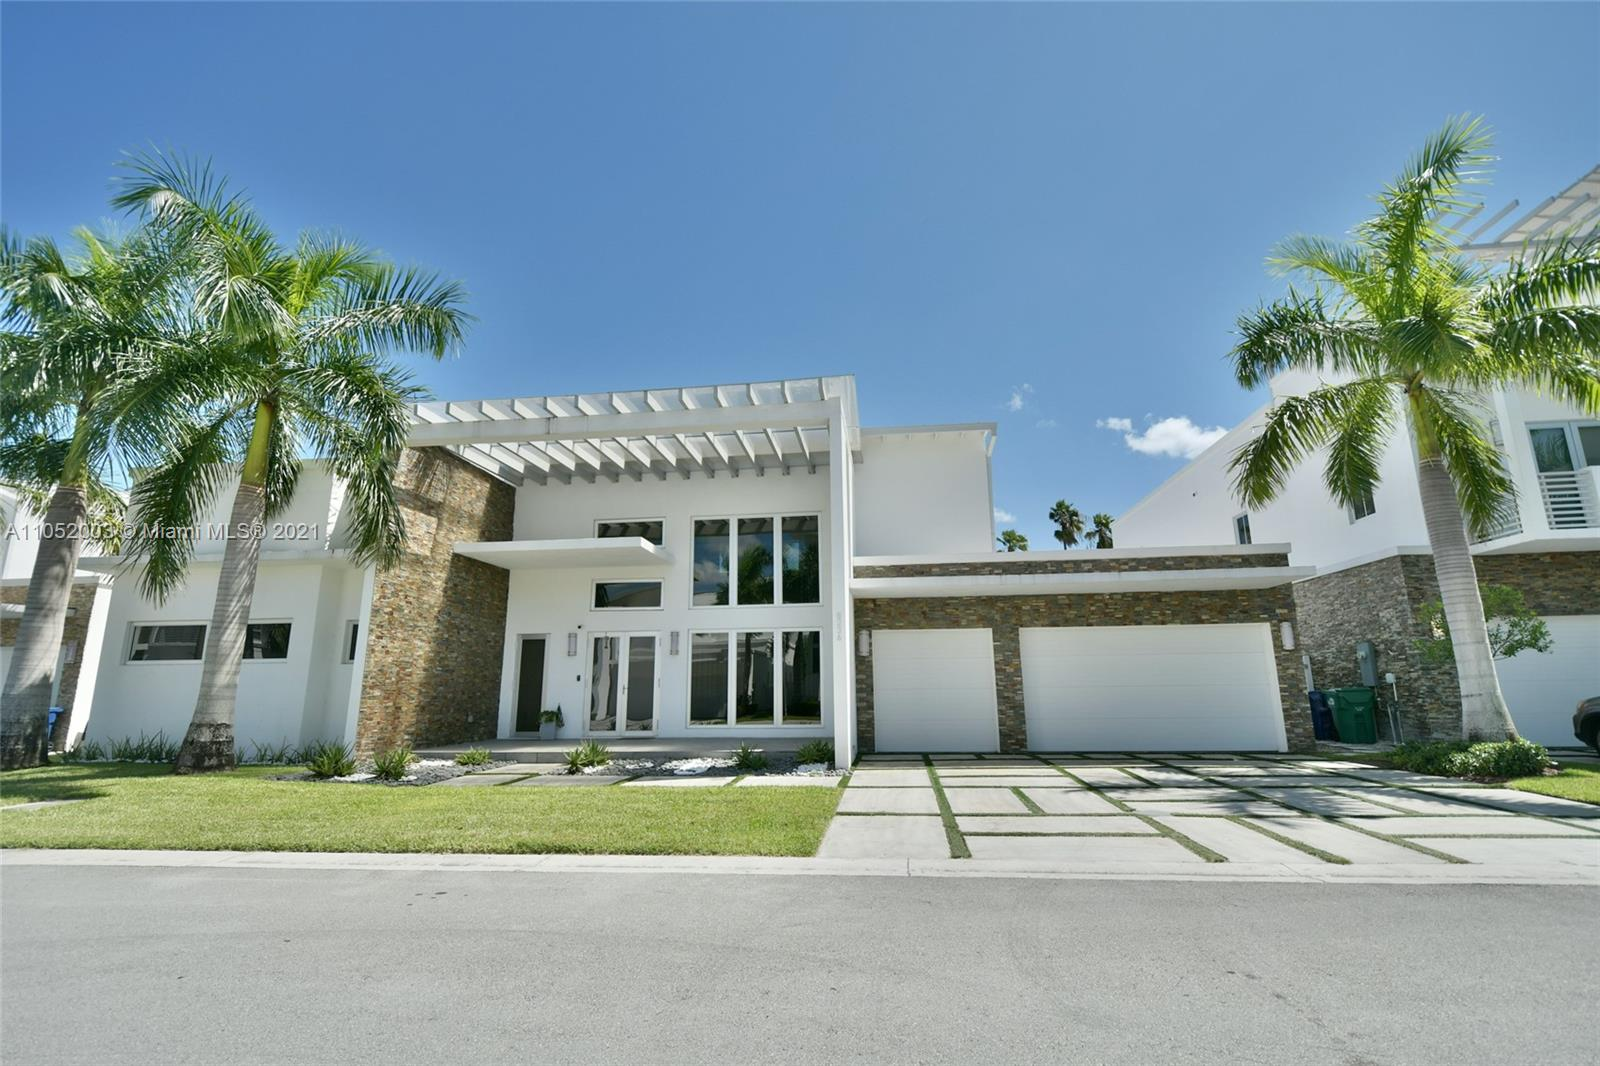 Coveted single-story property in one of the best-located condominiums in the city of Doral Oasis Park built in 2015. This beautiful 5 bed, 6 bath home stands out for having high ceilings creating a wow effect from the moment you walk in. Has a magazine closet the dream of any discerning woman or man.    Pool Completely renovated house porcelain floors,  Outdoor equipped with built-in barbecue, ice maker, refrigerator, hibachi grill, deep fryer, stove, pizza oven, etc. Next to Doral City Place for shopping, dining, and fun. Access to Palmetto Expressway, Turnpike & Dolphin Expressway & Golf Resort. The Sellers wants a Clear a good offer for both parties No Subject to Appraisal.